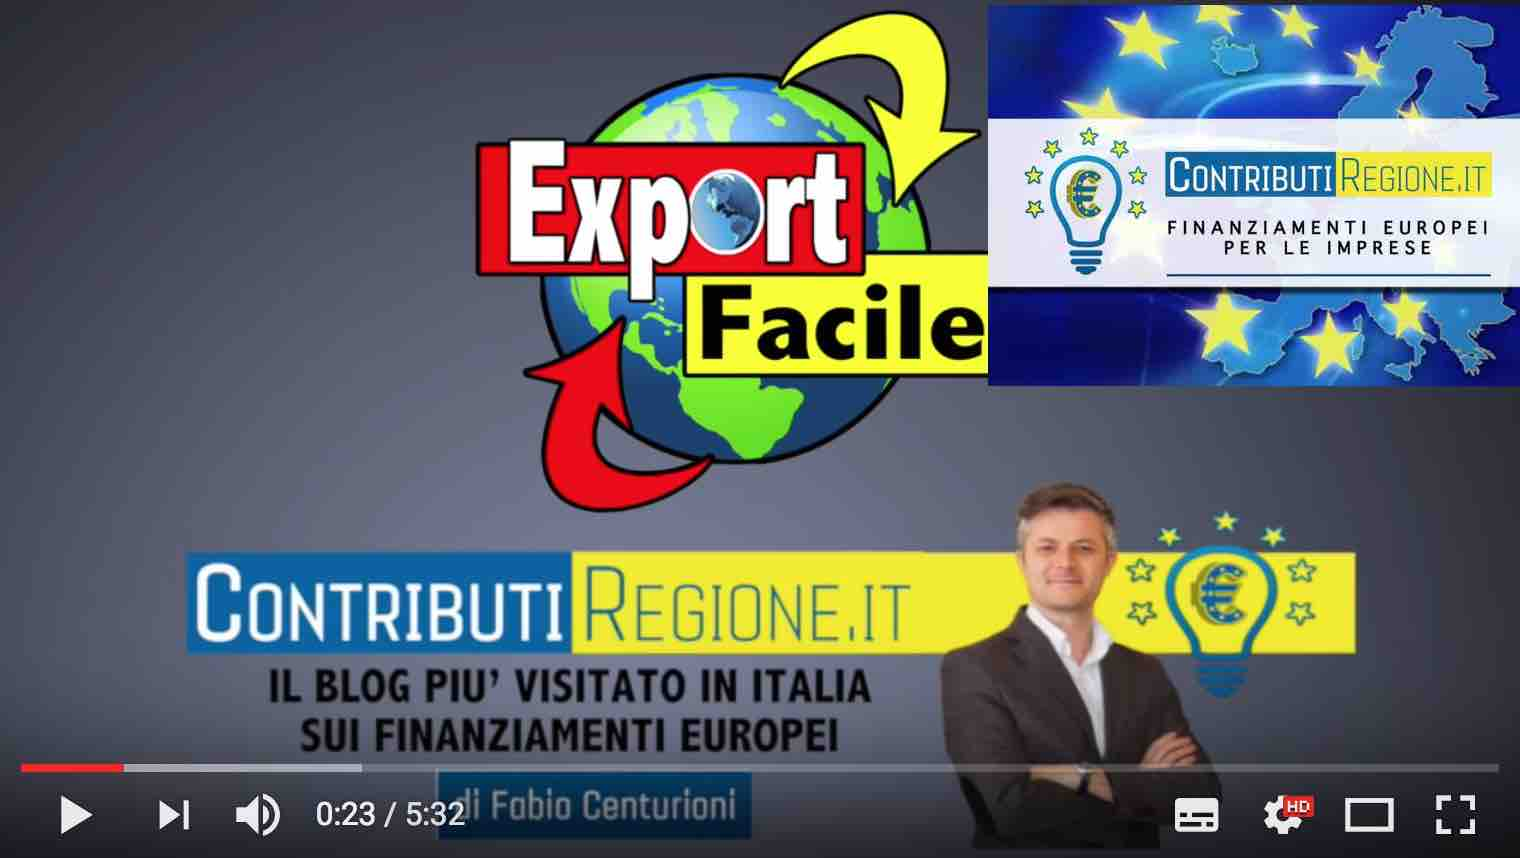 VIDEO INTERVISTA AL RESPONSABILE REGIONALE BANDI ESPORTAZIONE